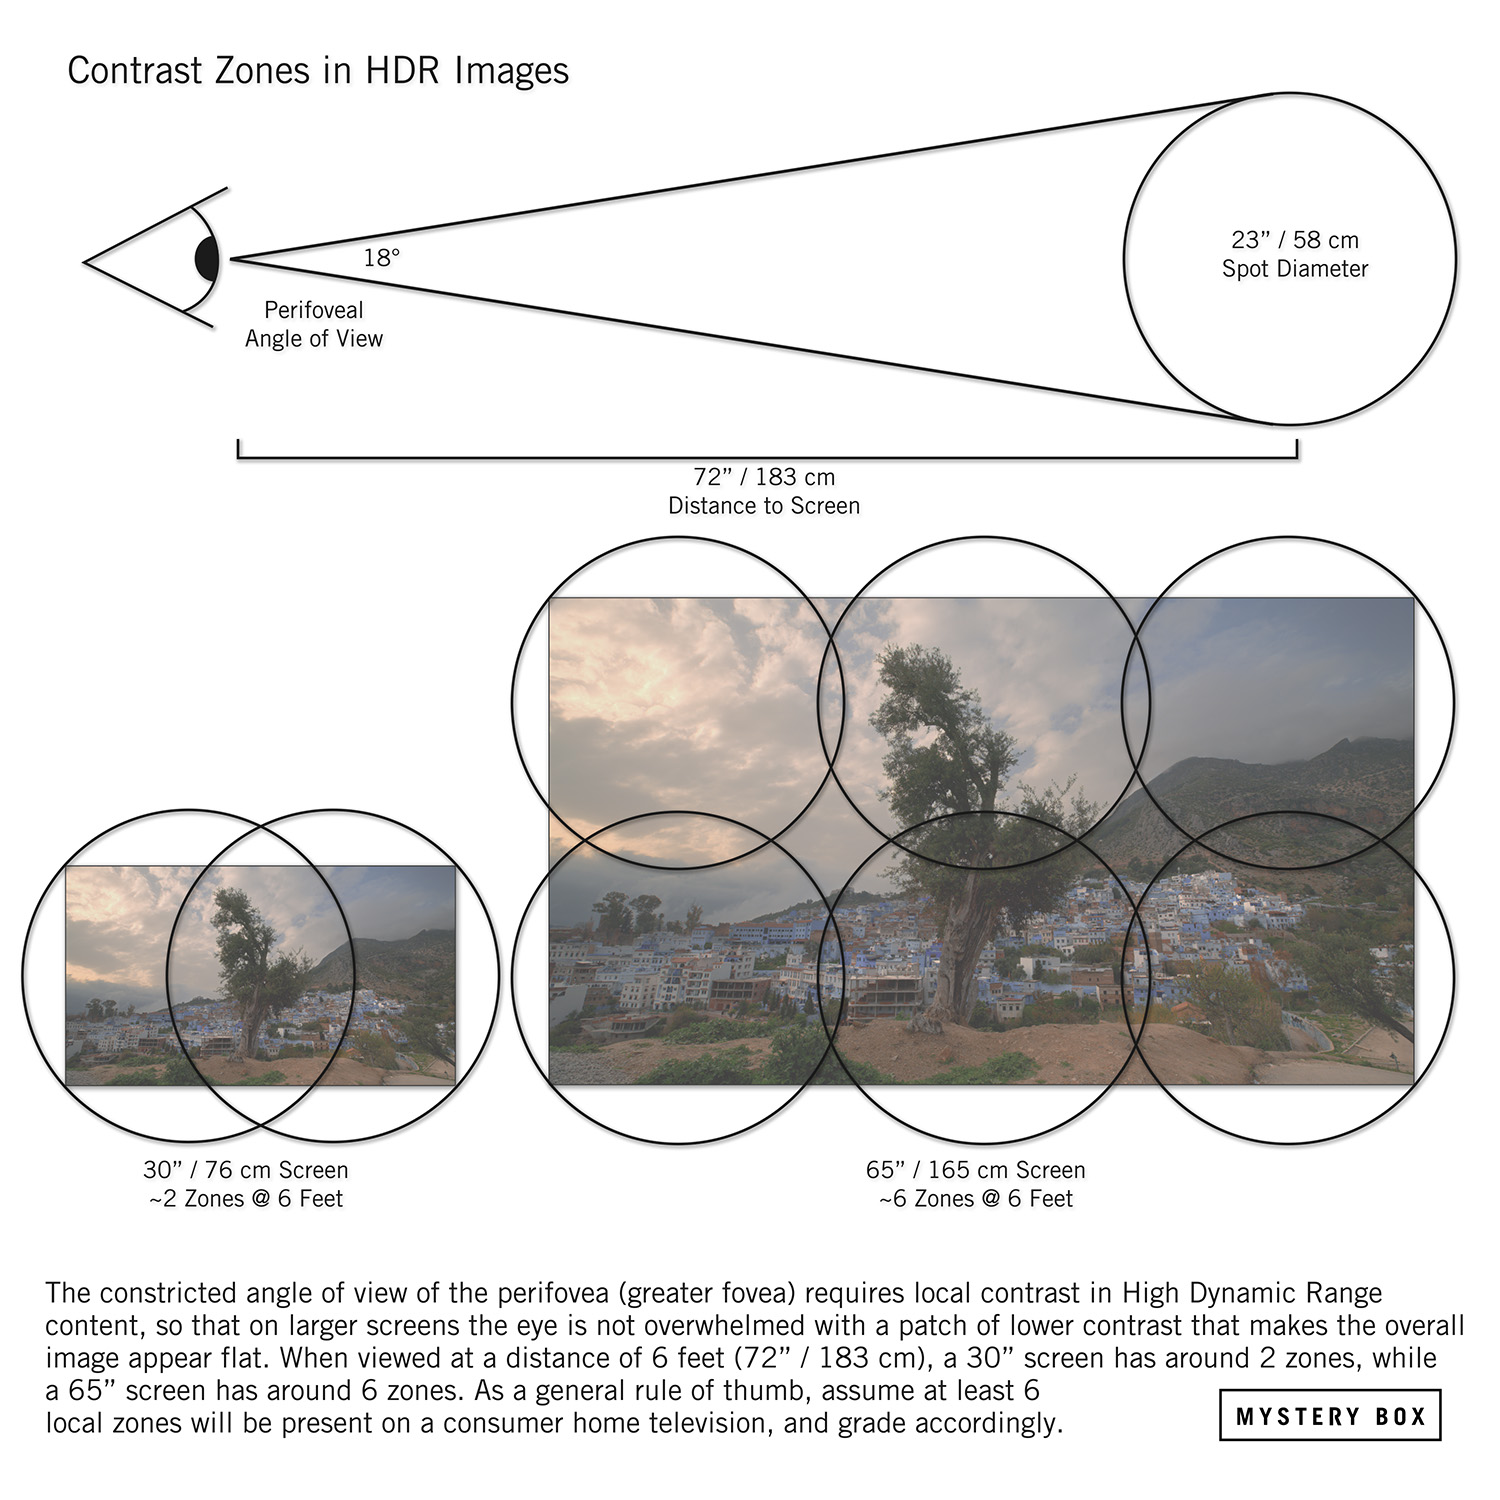 Contrast Zones in HDR Visualization